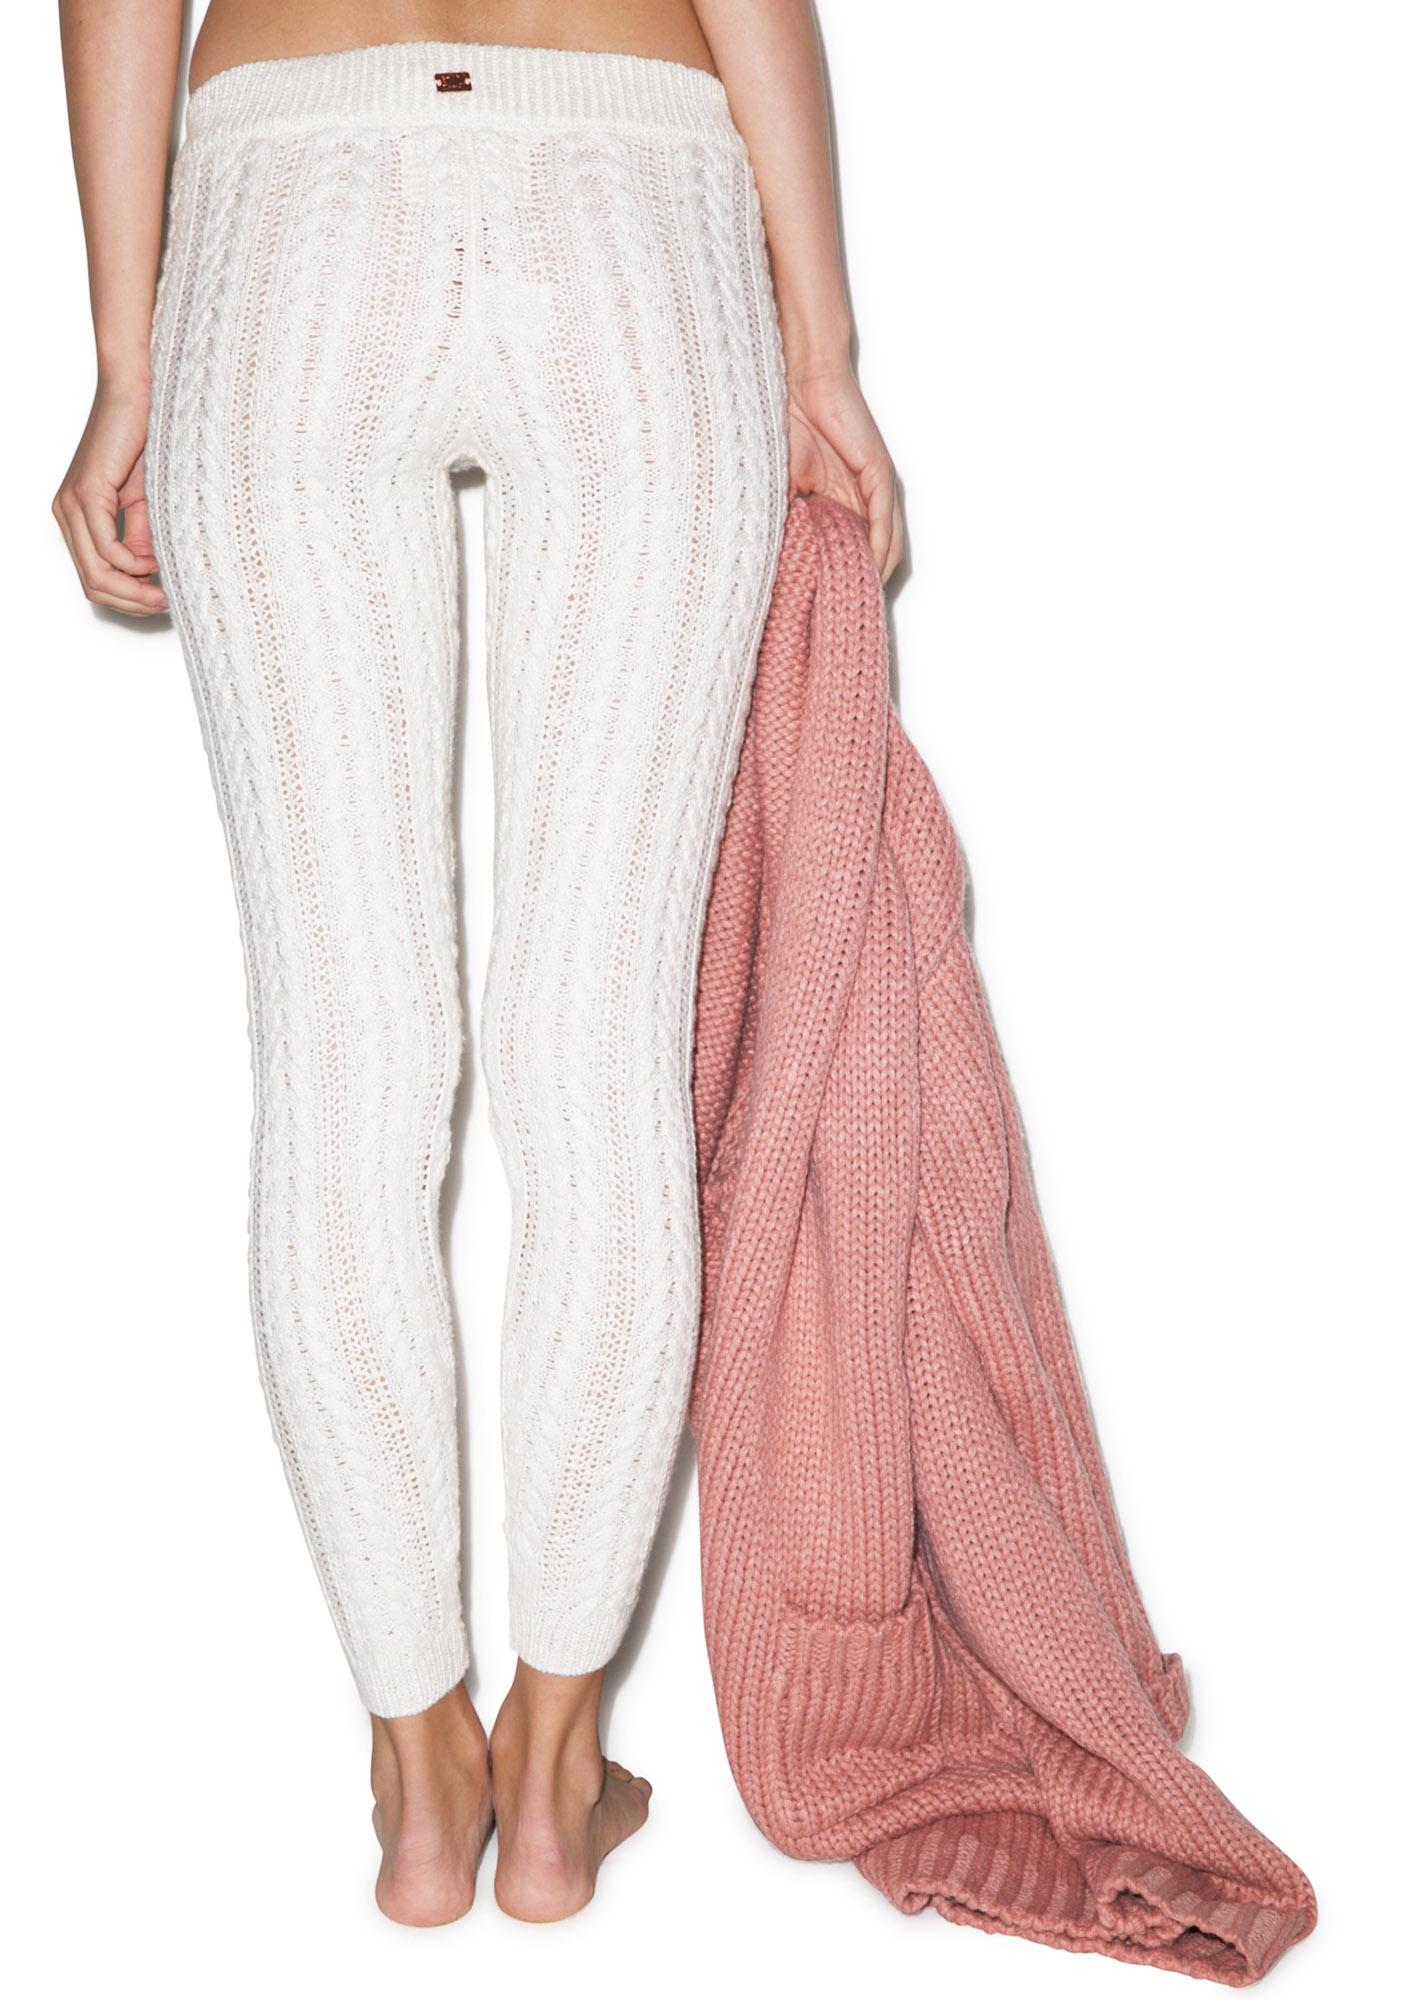 For Love & Lemons Solstice Cable Leggings